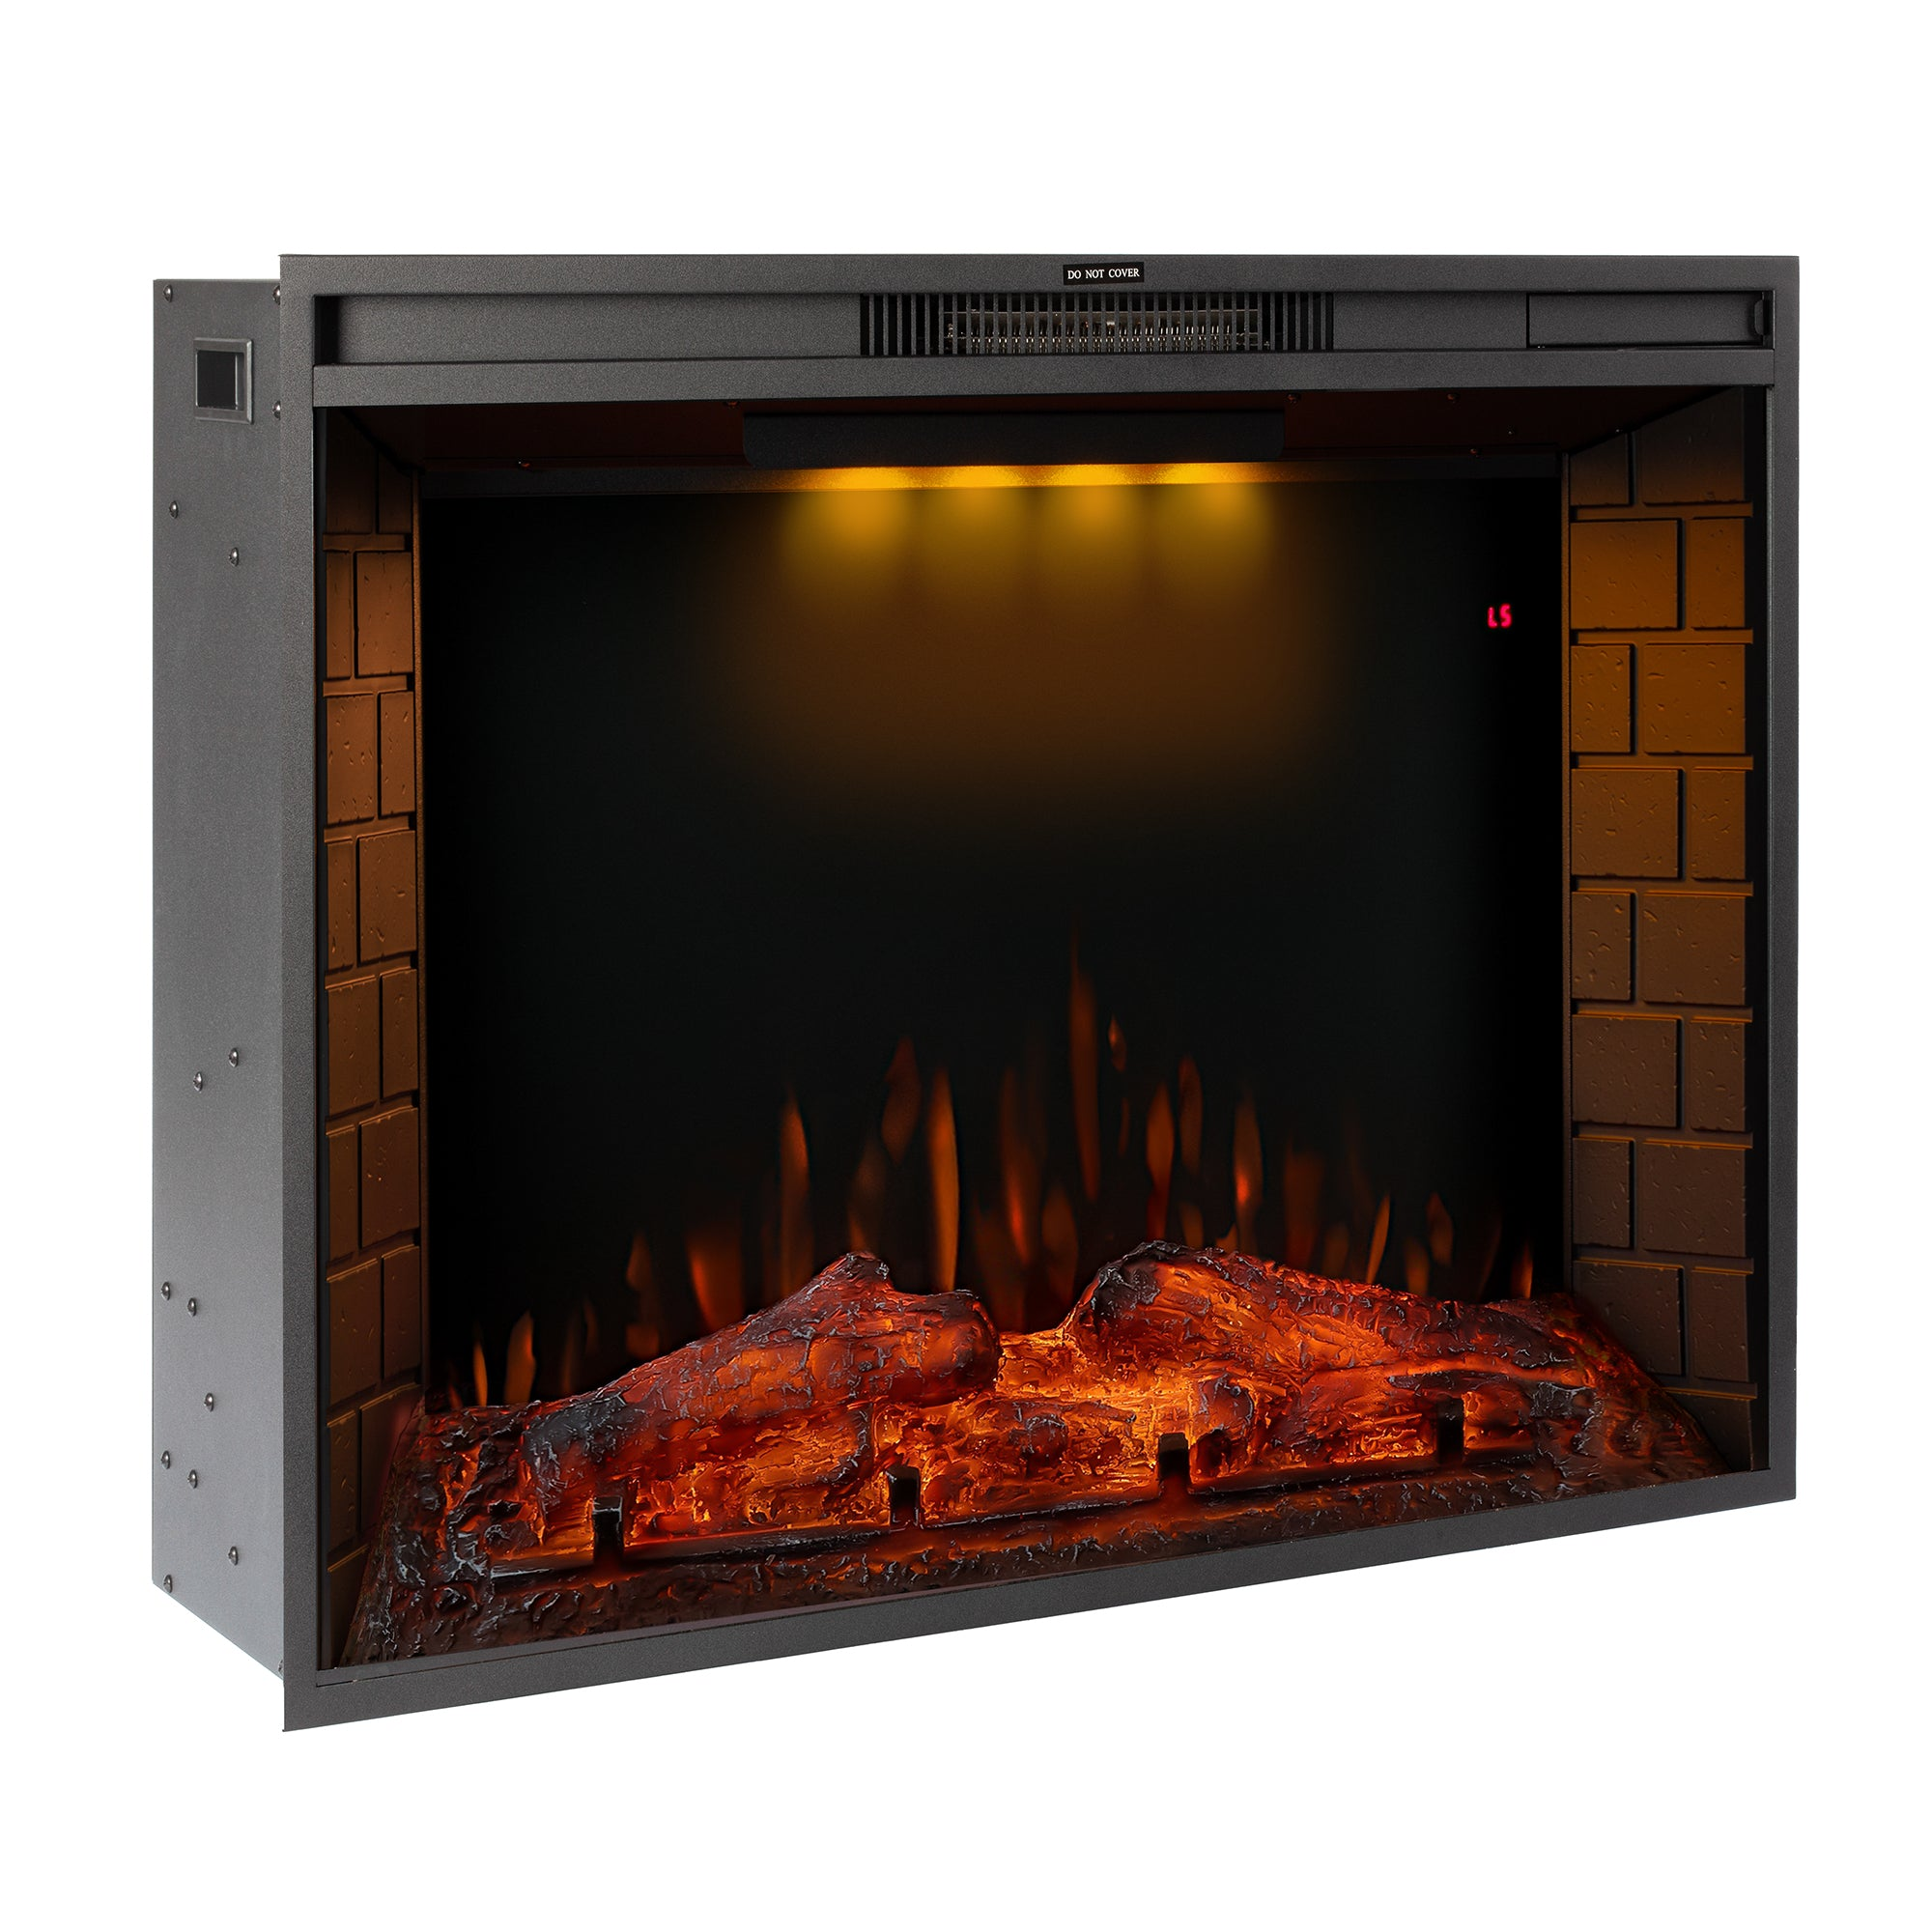 TREXM 33 inch LED Recessed Electric Fireplace with 3 Top Light Colors, Remote Control, Adjustable Heating, and Touch Screen 1500W, Black